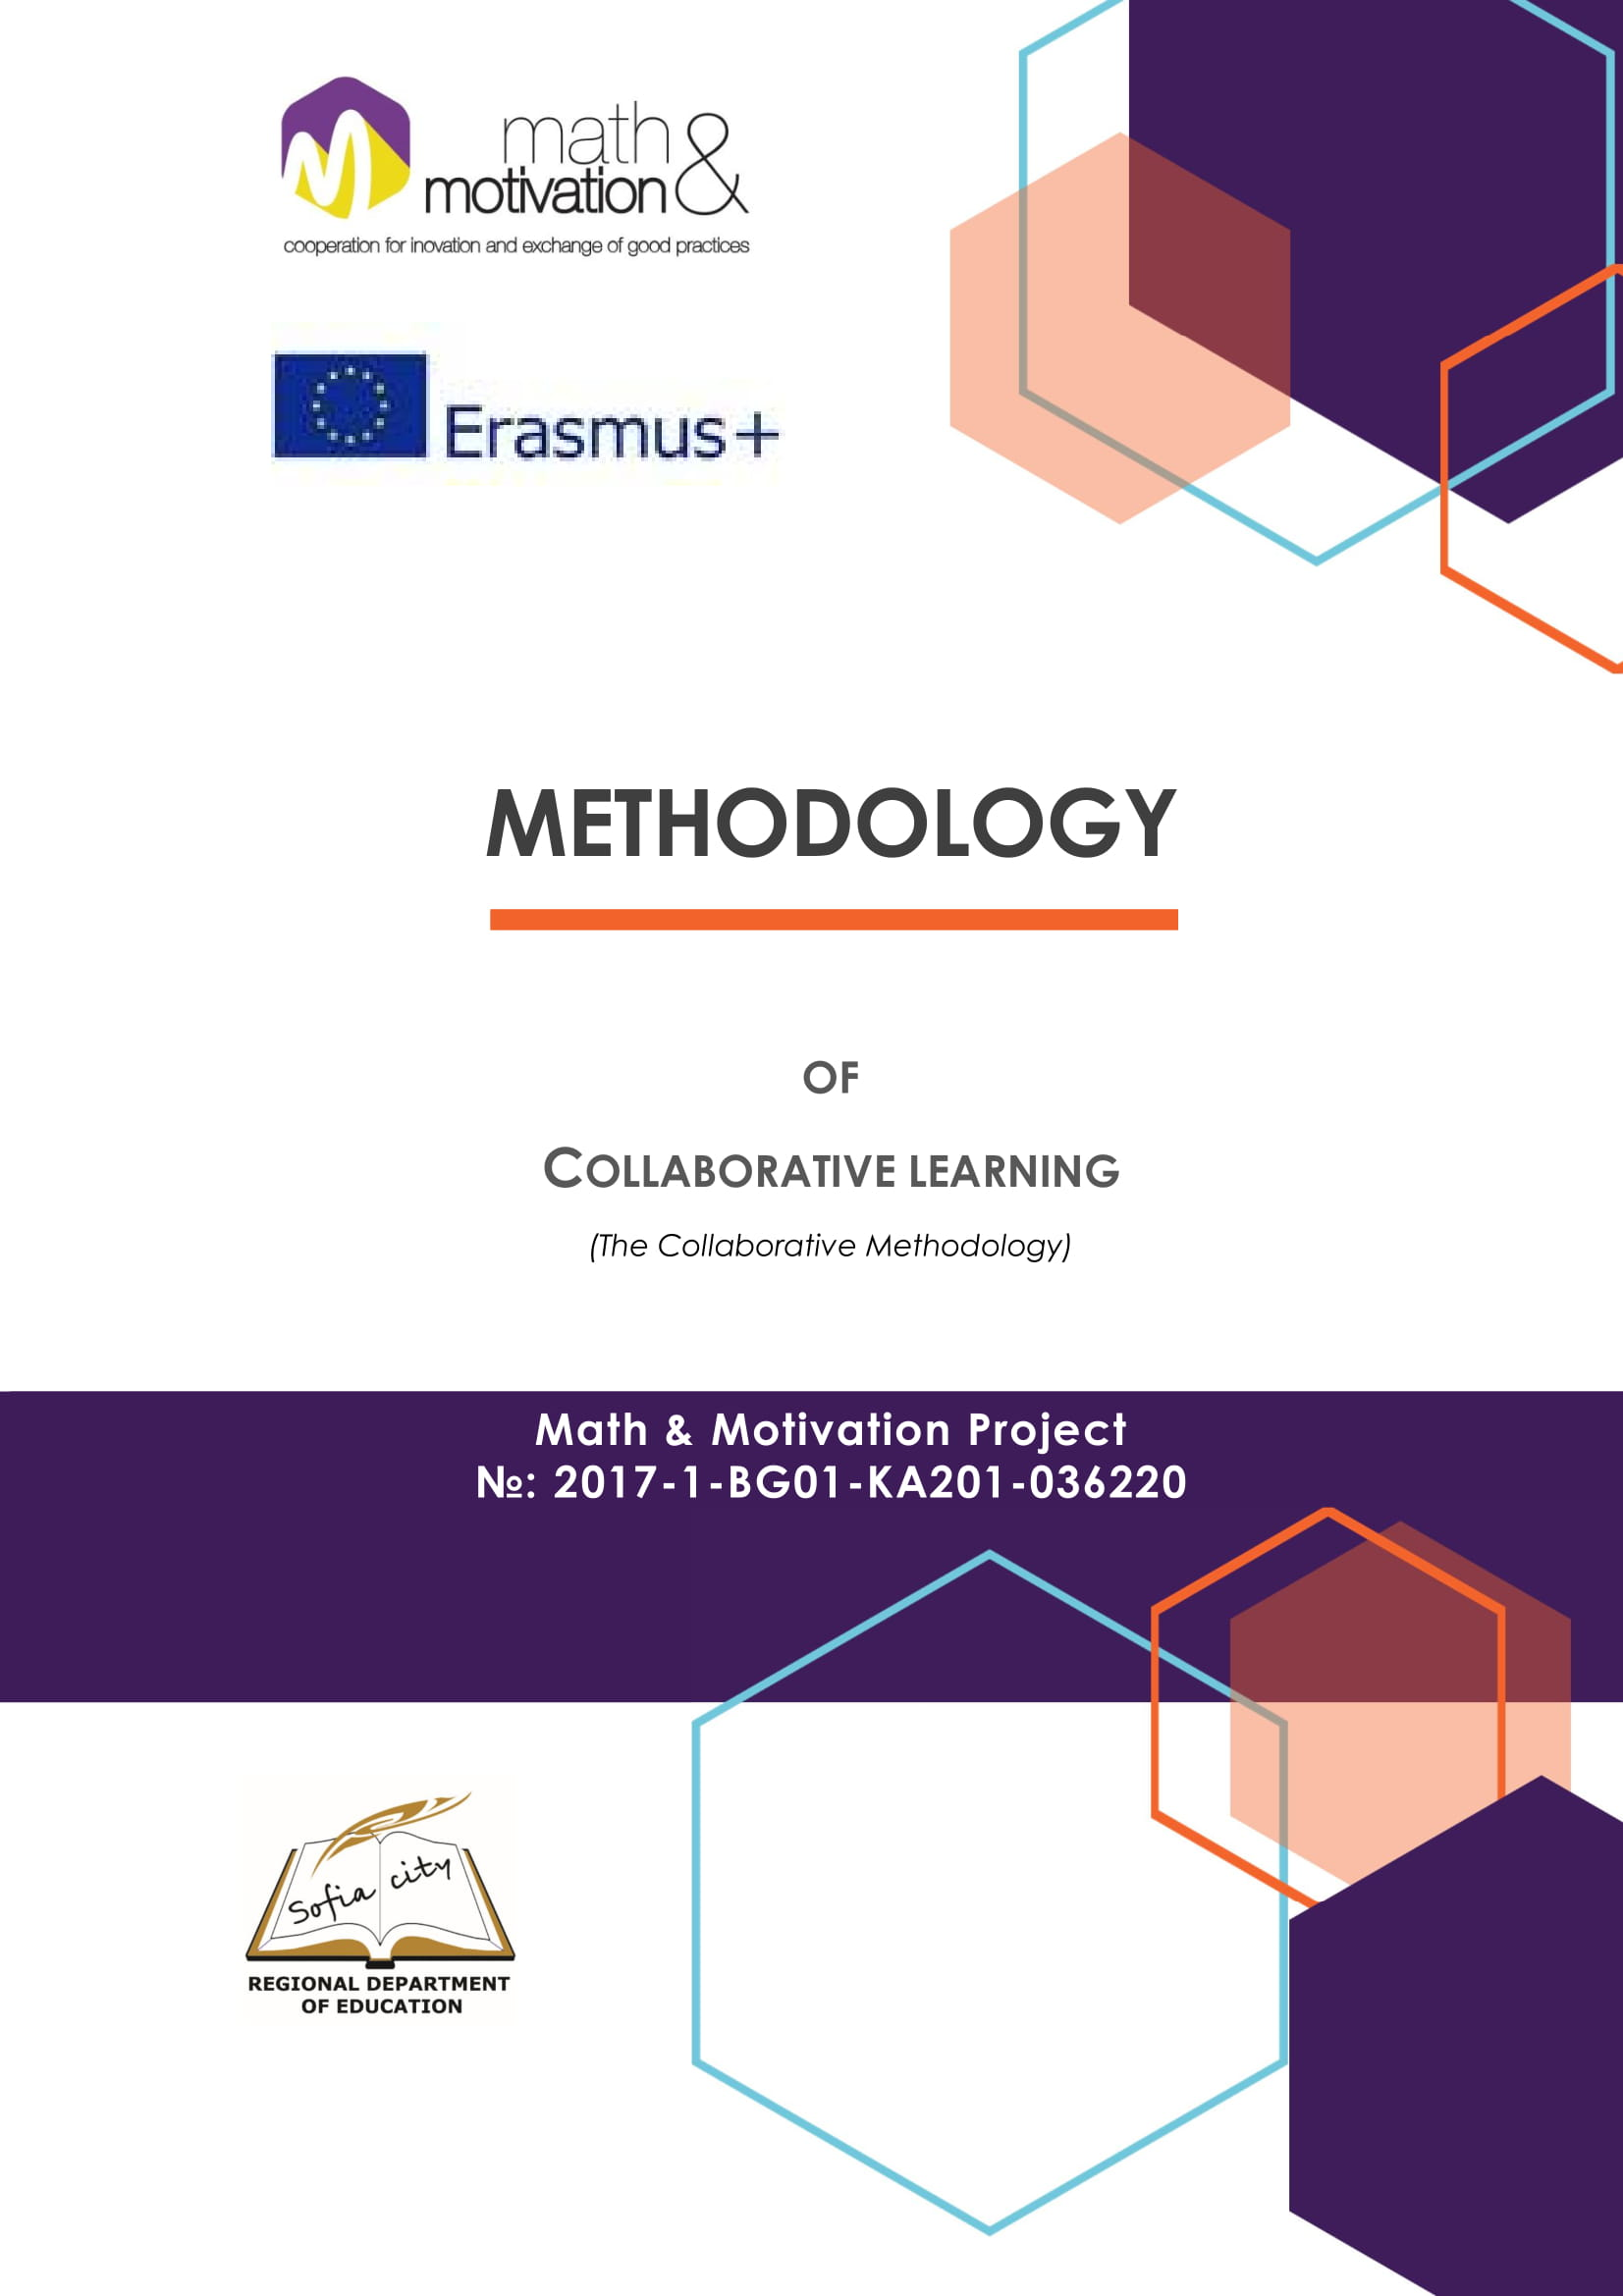 (English) What is Collaborative learning methodology?